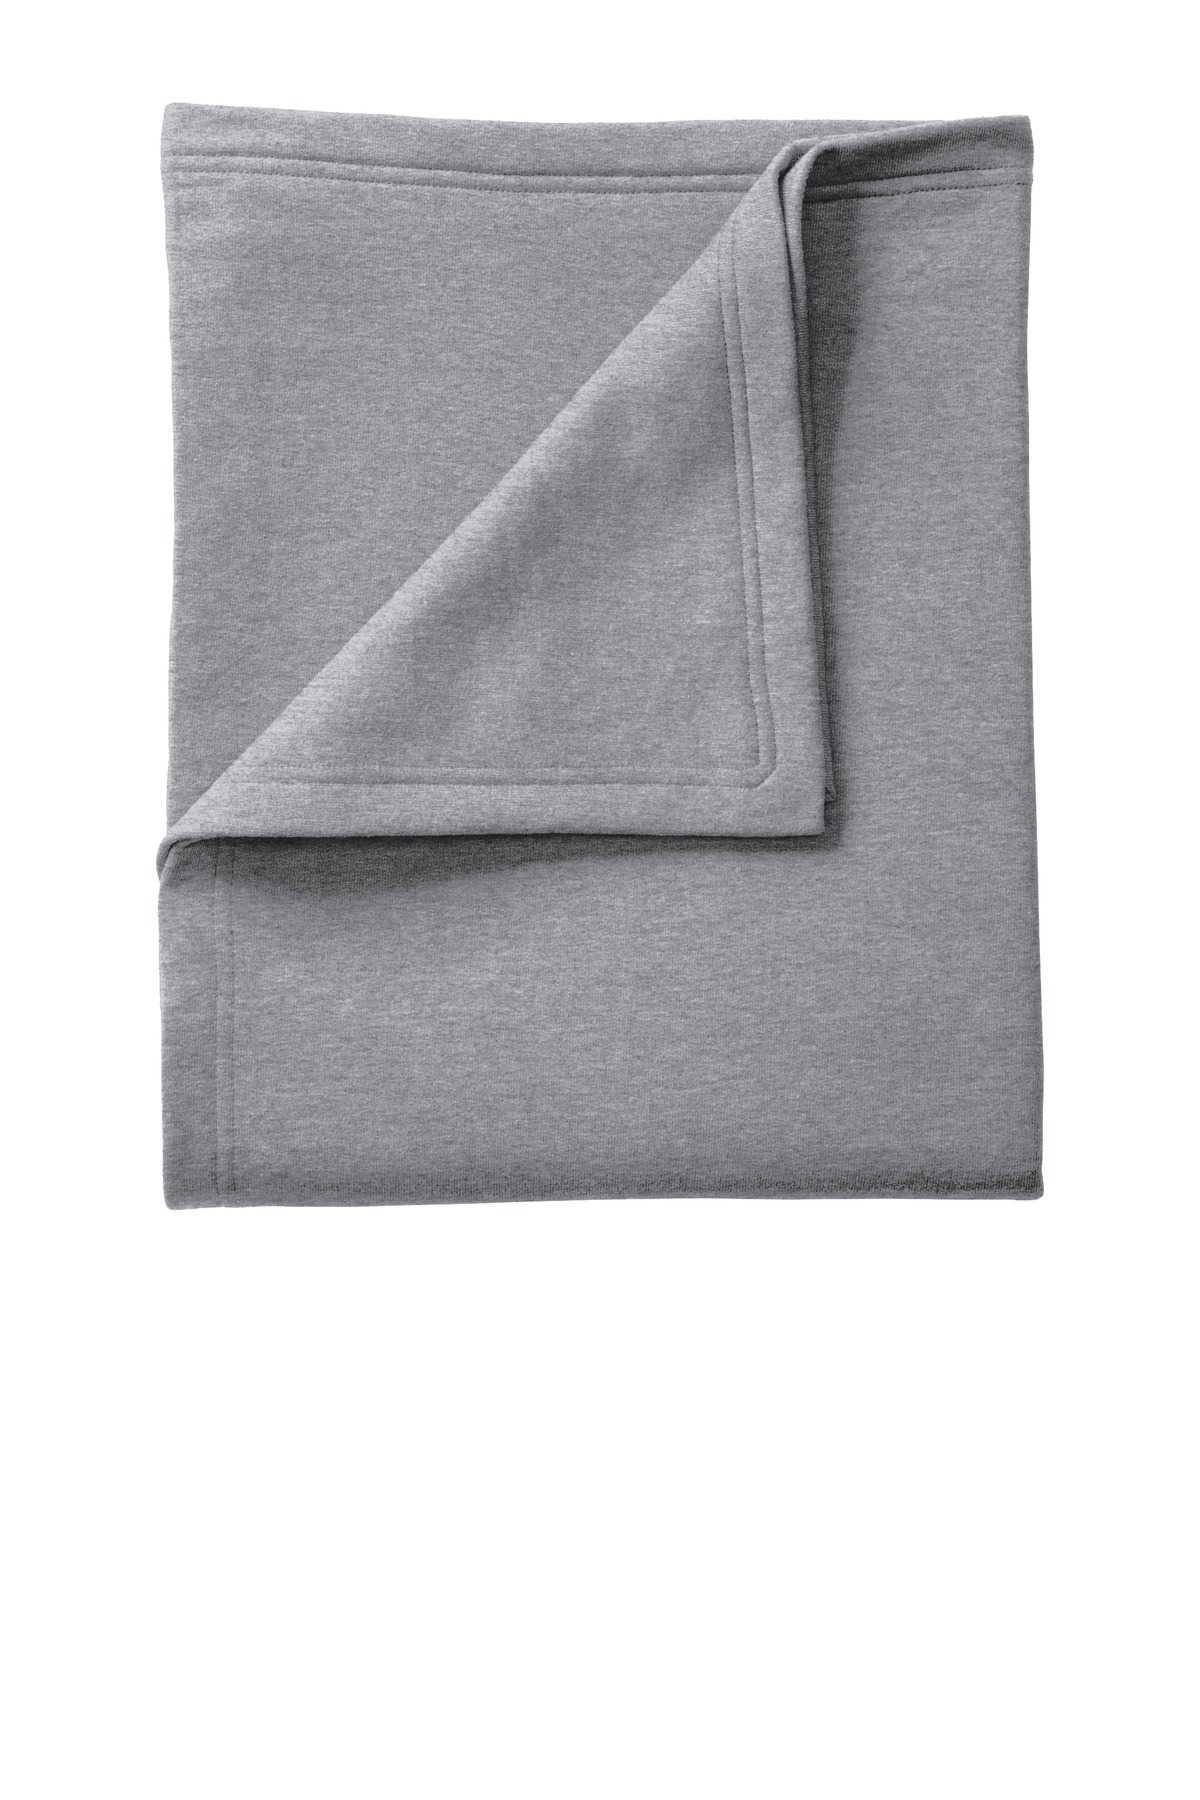 Port & Company  BP78 - Sweatshirt Blanket